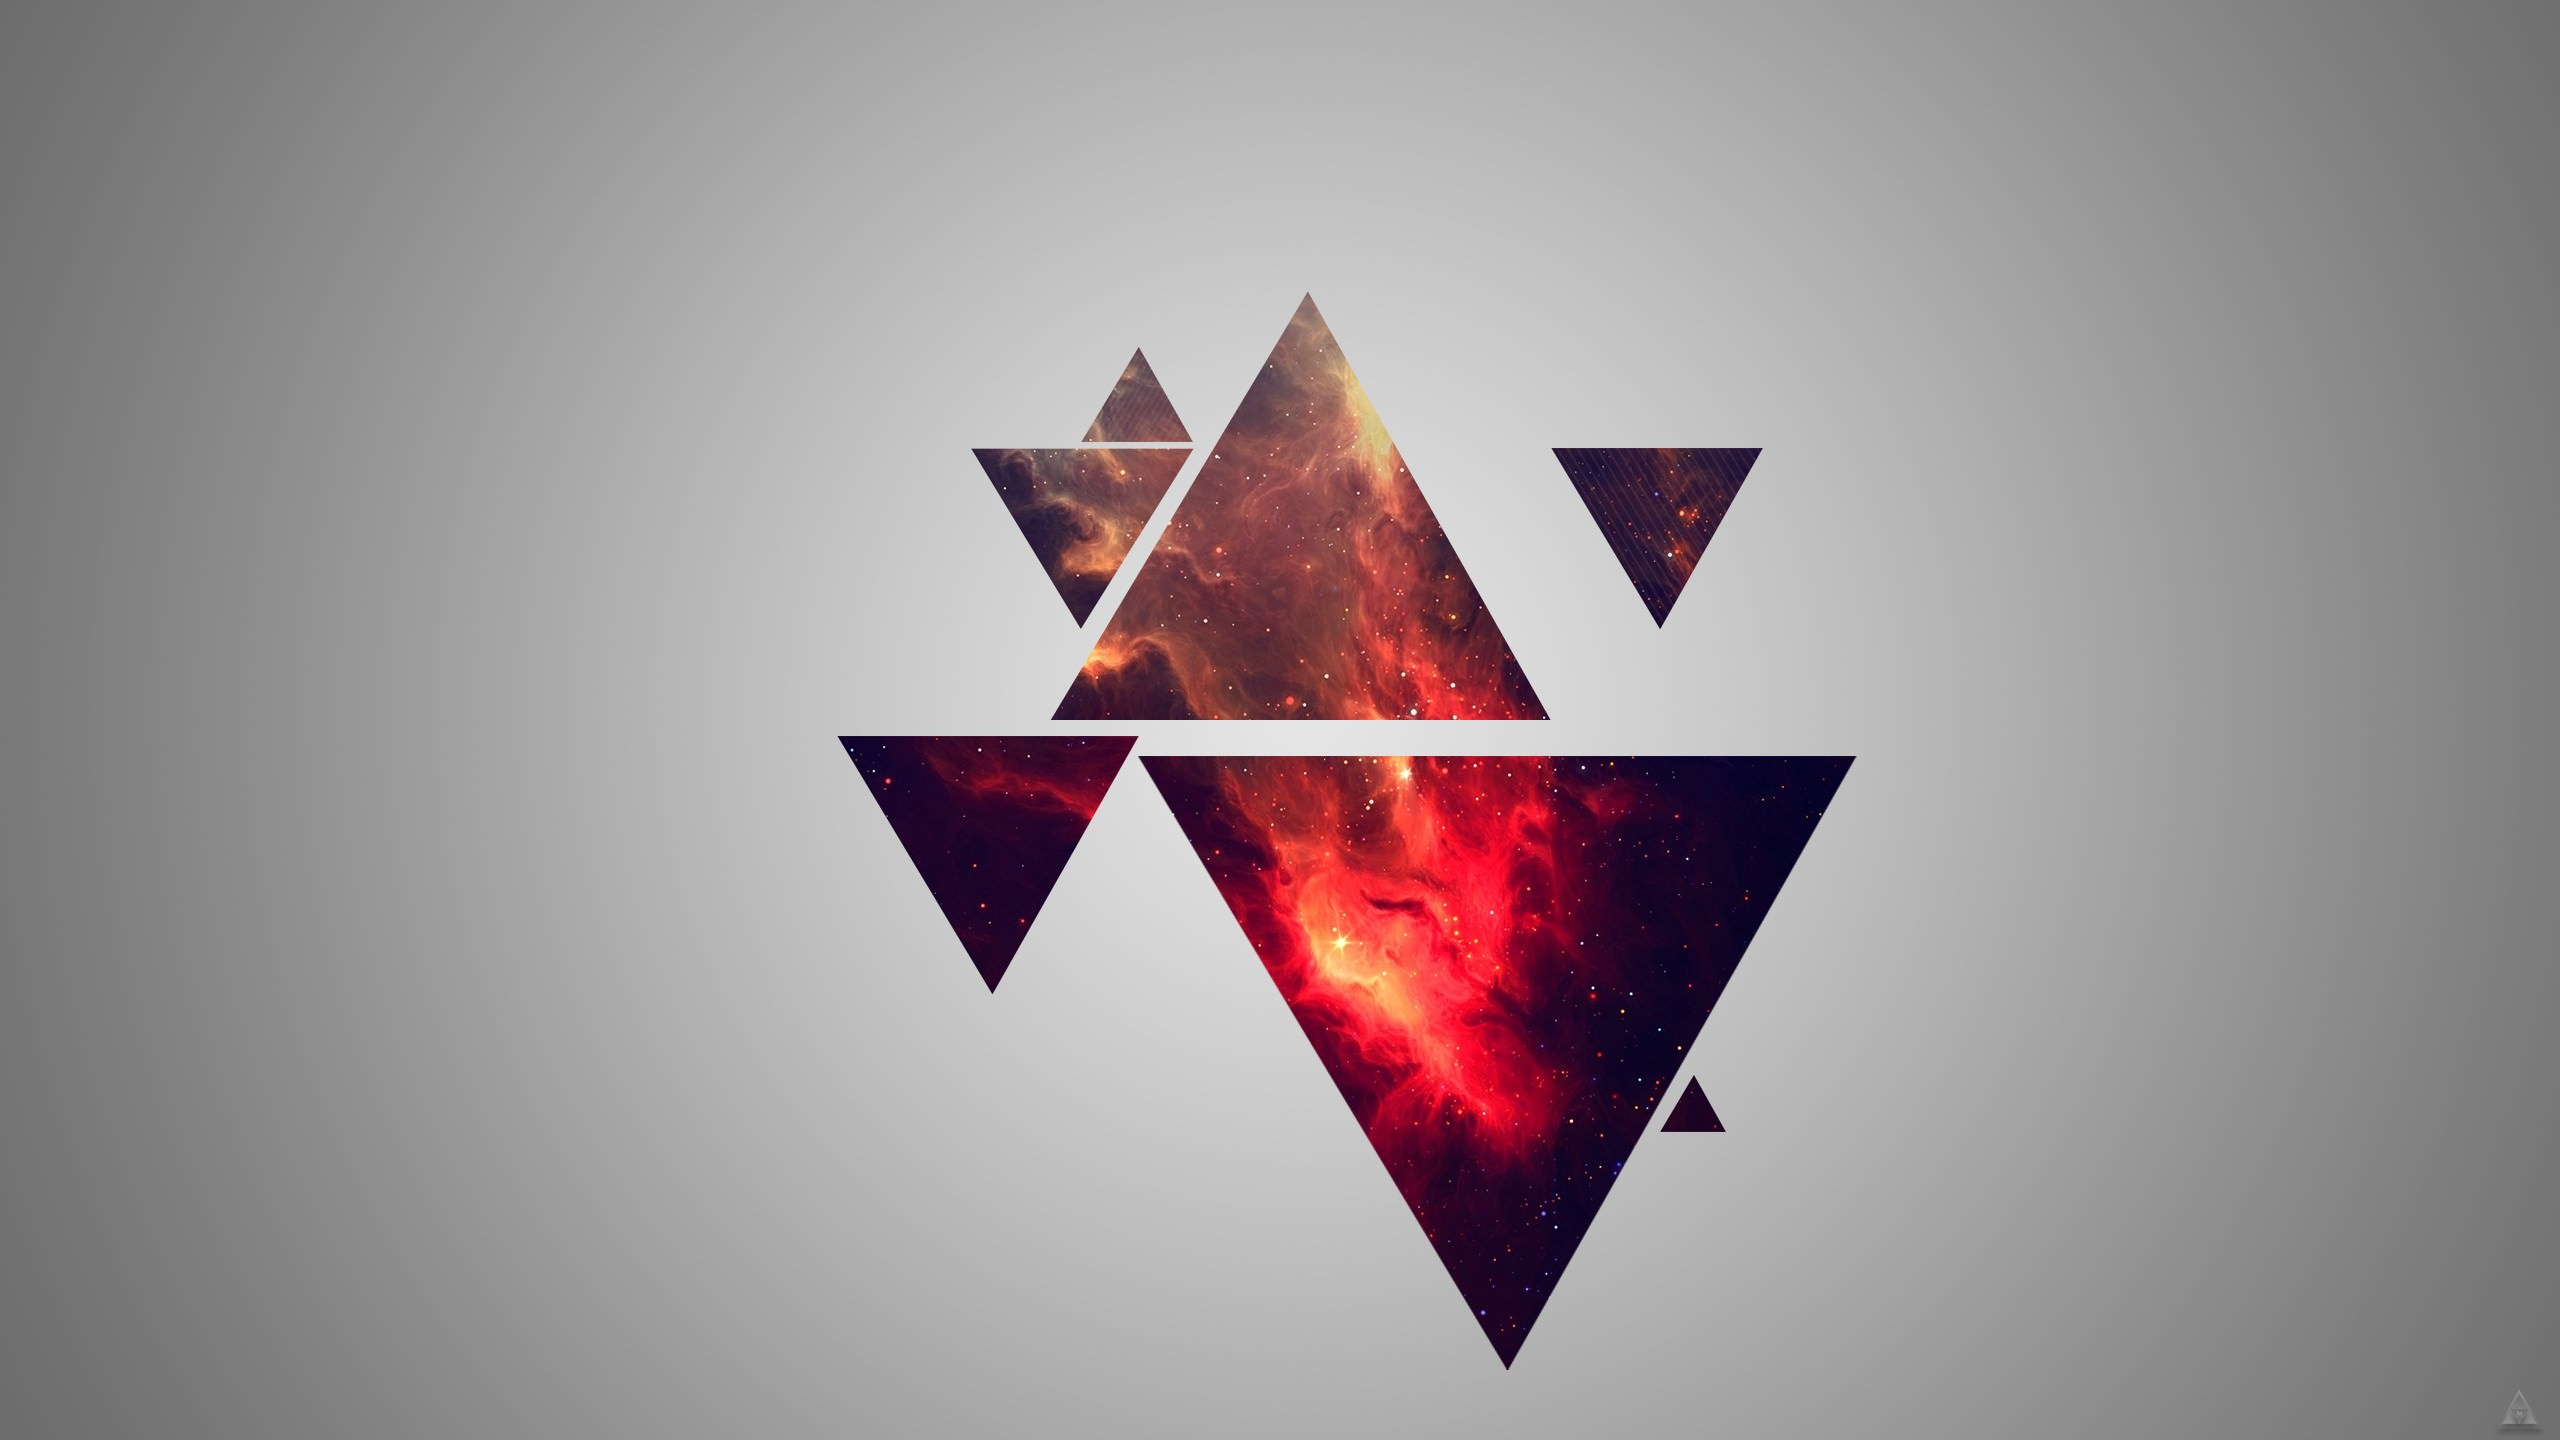 abstract hipster minimalistic nebulae wallpaper VCC 2560x1440